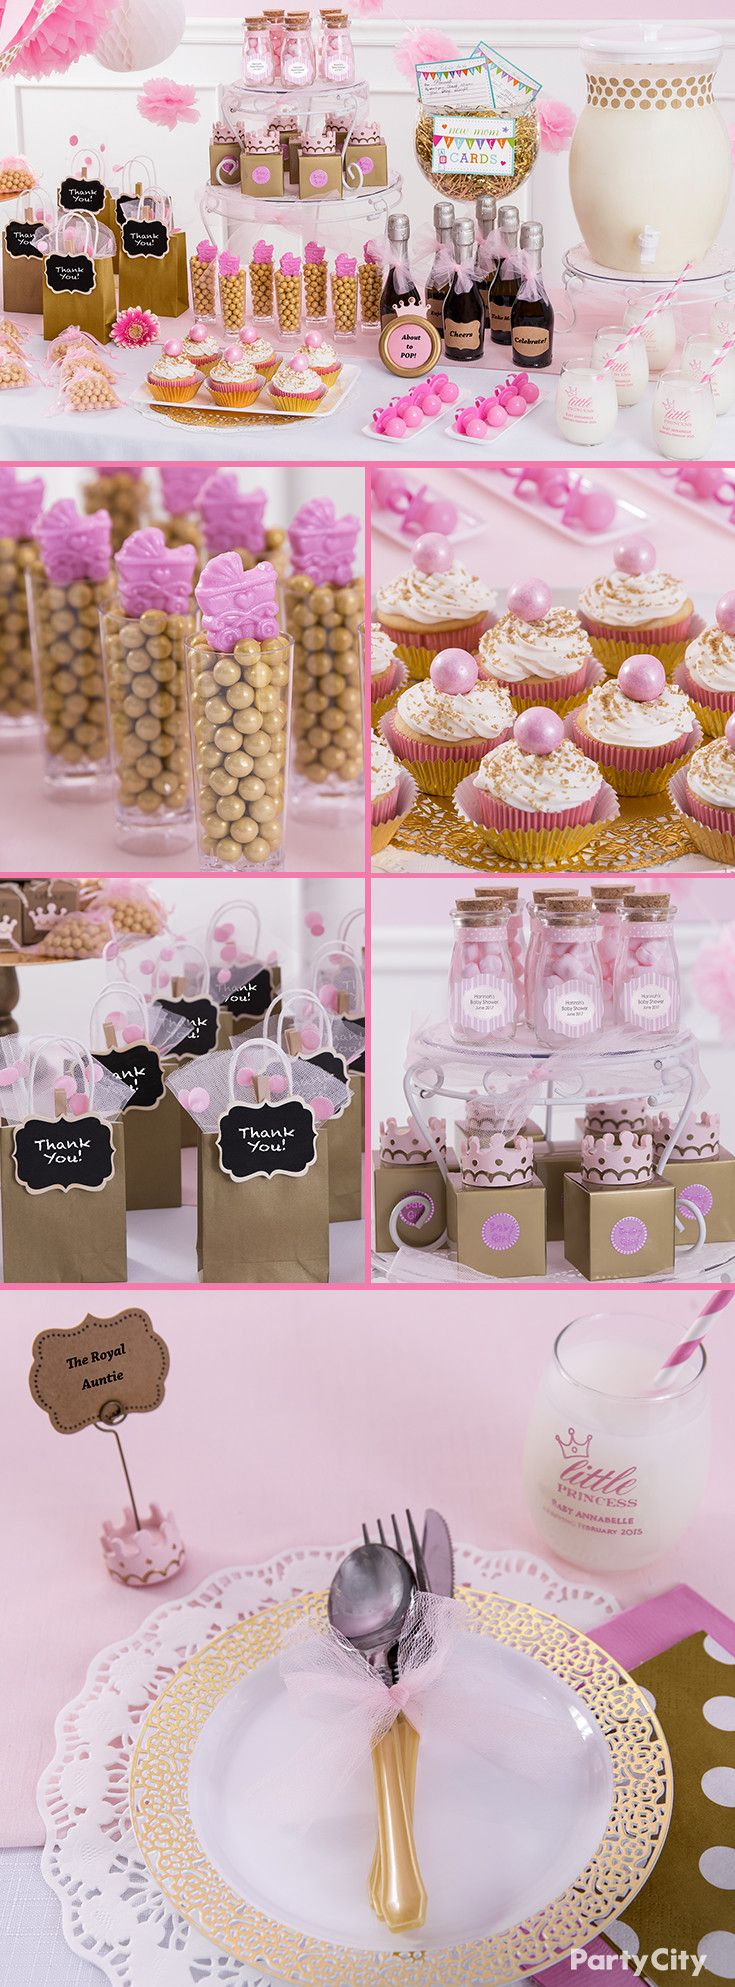 baby shower ideas party city wedding from Party City Celebrate the mother to be with a baby shower worthy of royalty Create